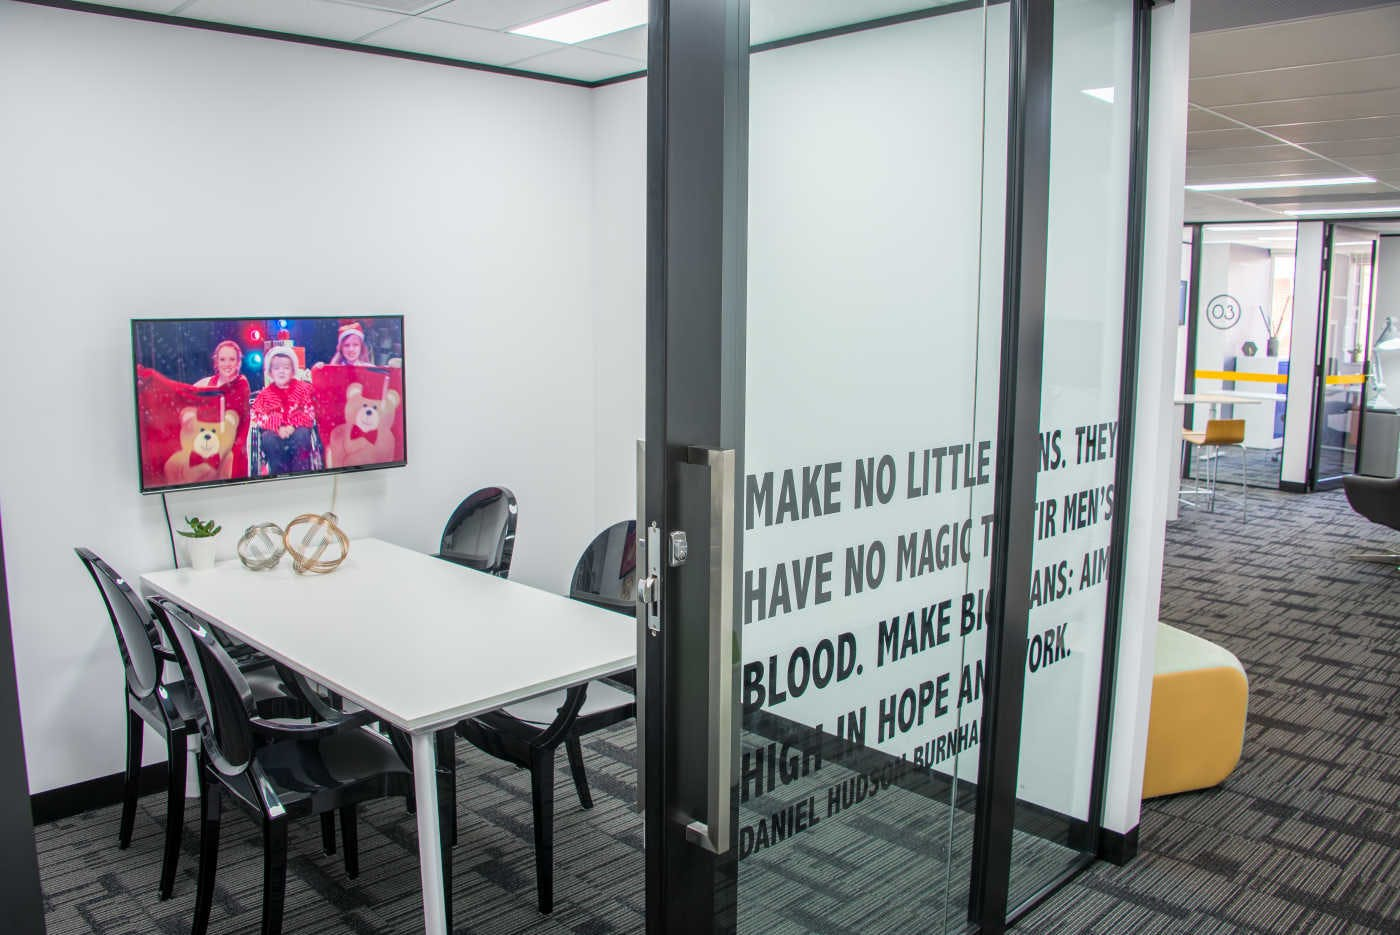 Meeting Room, meeting room at Anytime Offices, image 1